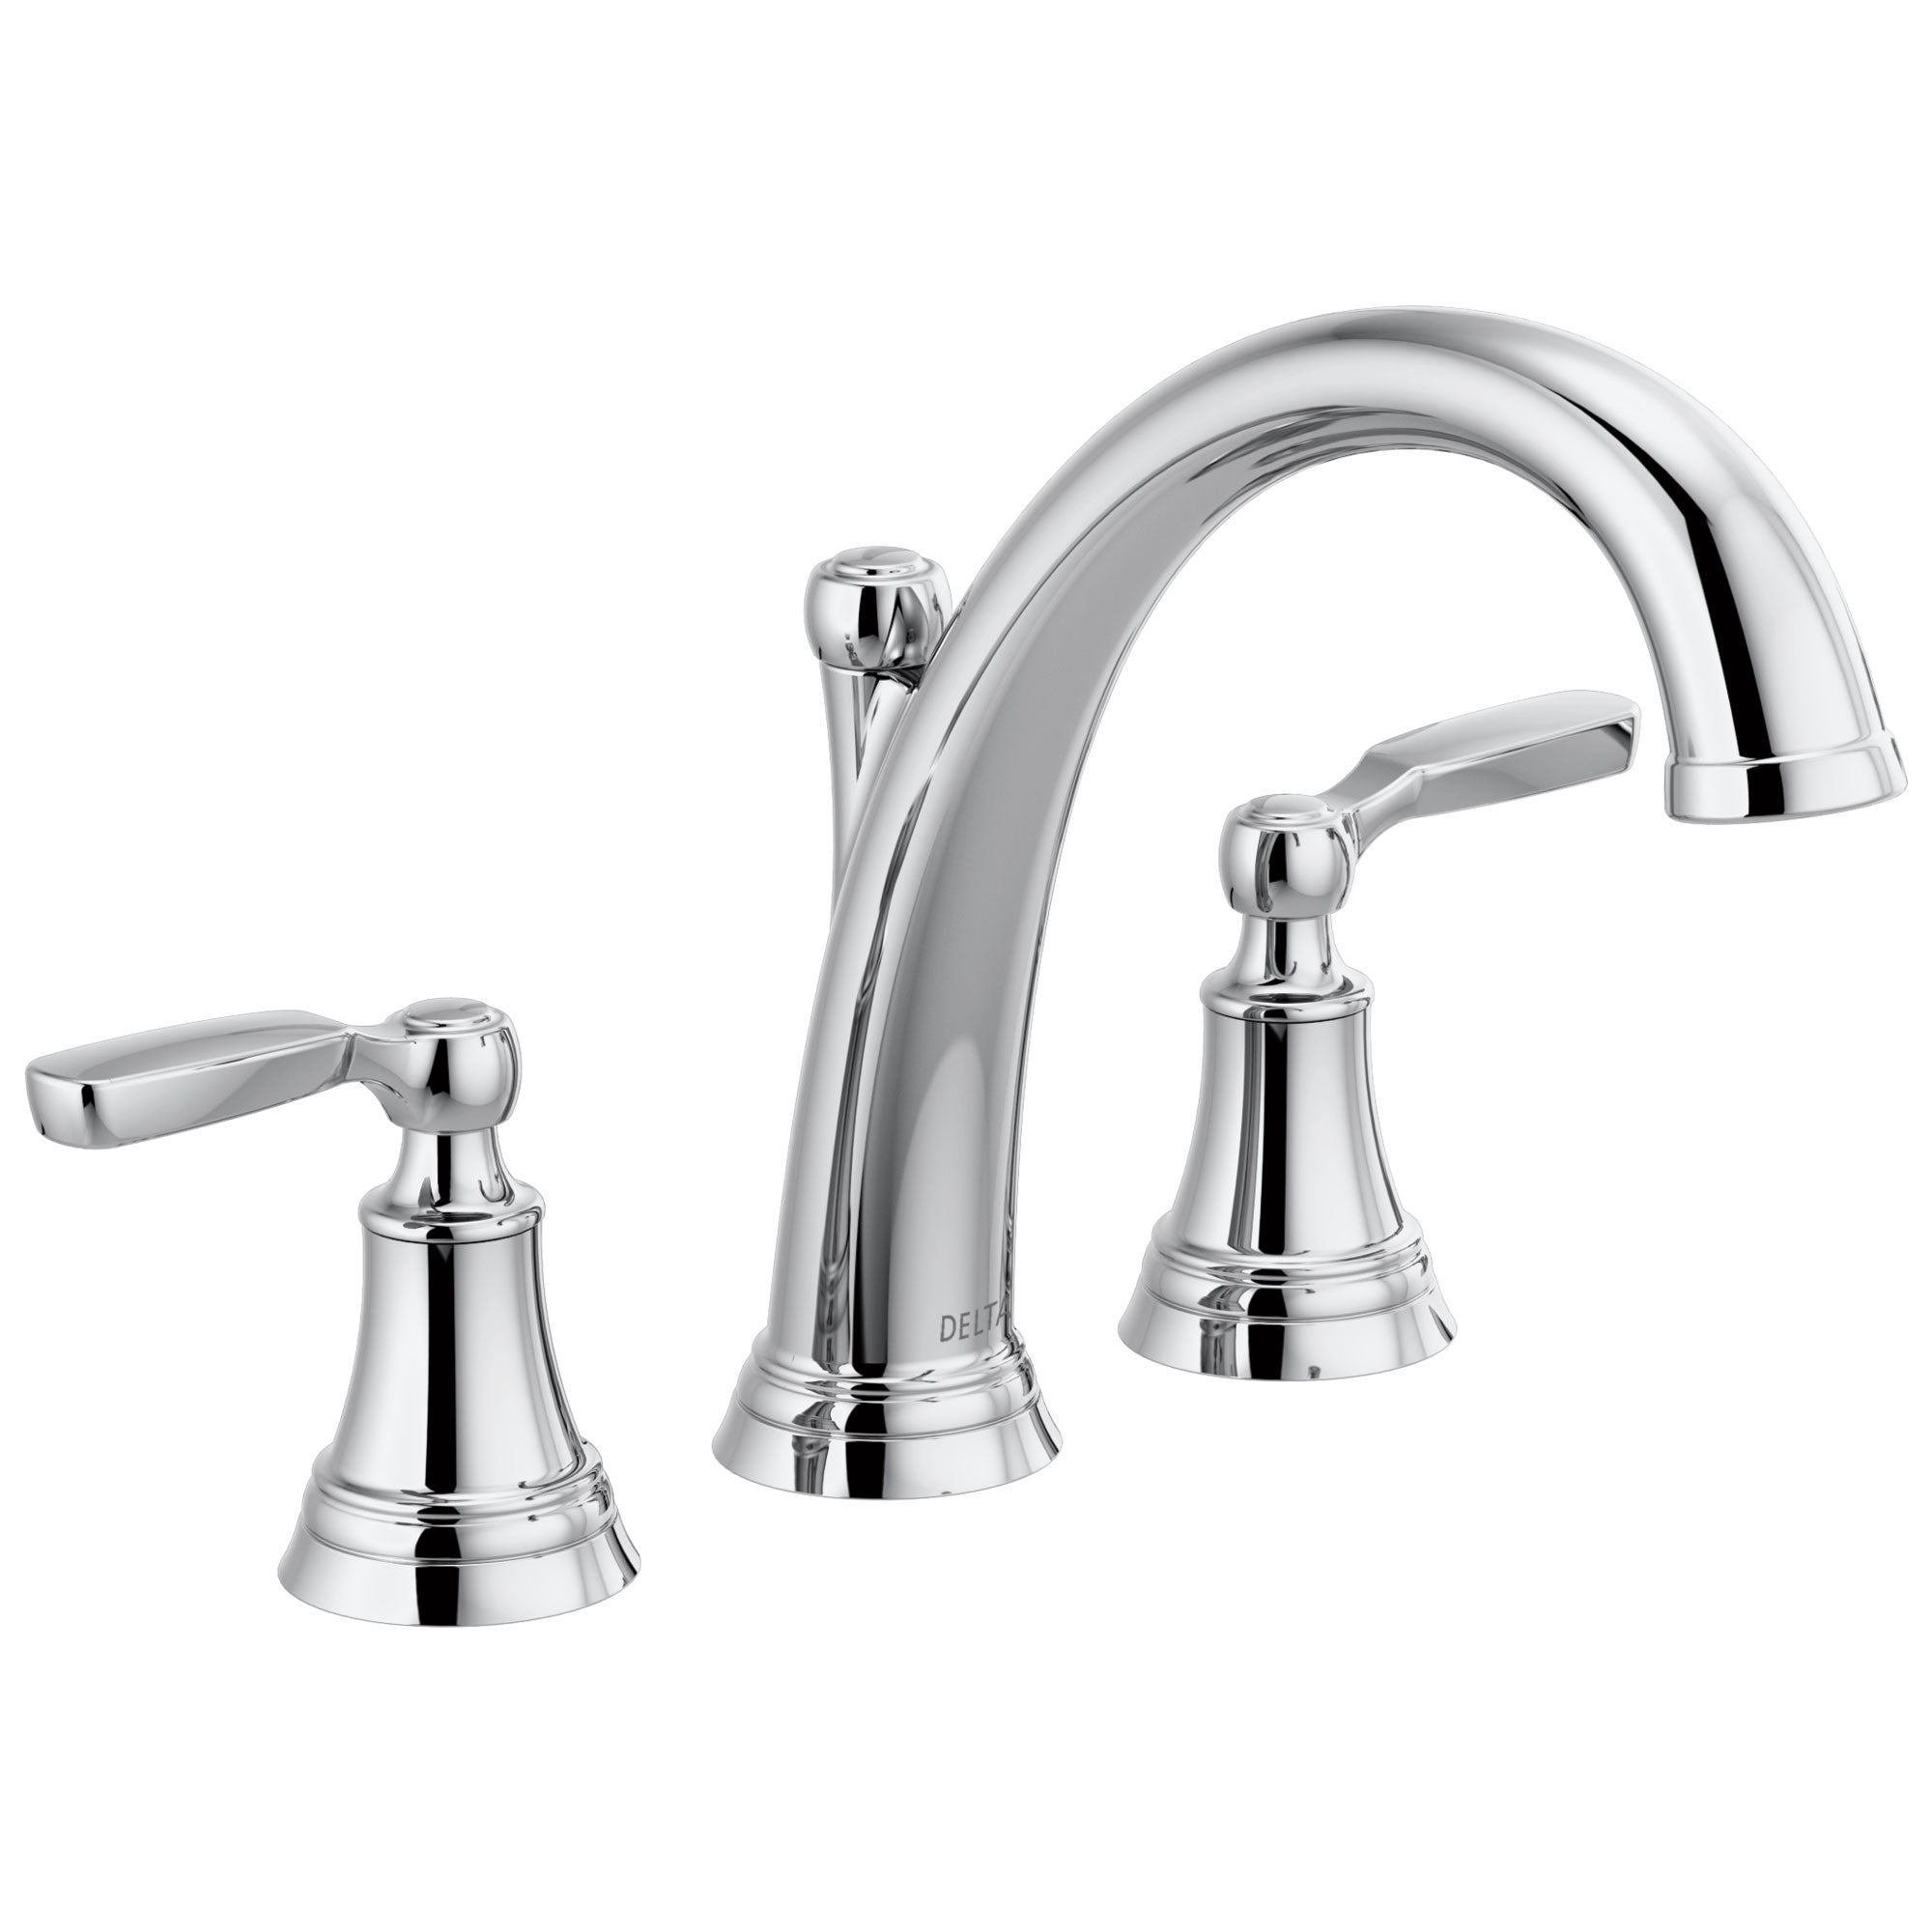 Delta Woodhurst Chrome Finish Roman Tub Filler Faucet Trim Kit (Requires Valve) DT2732